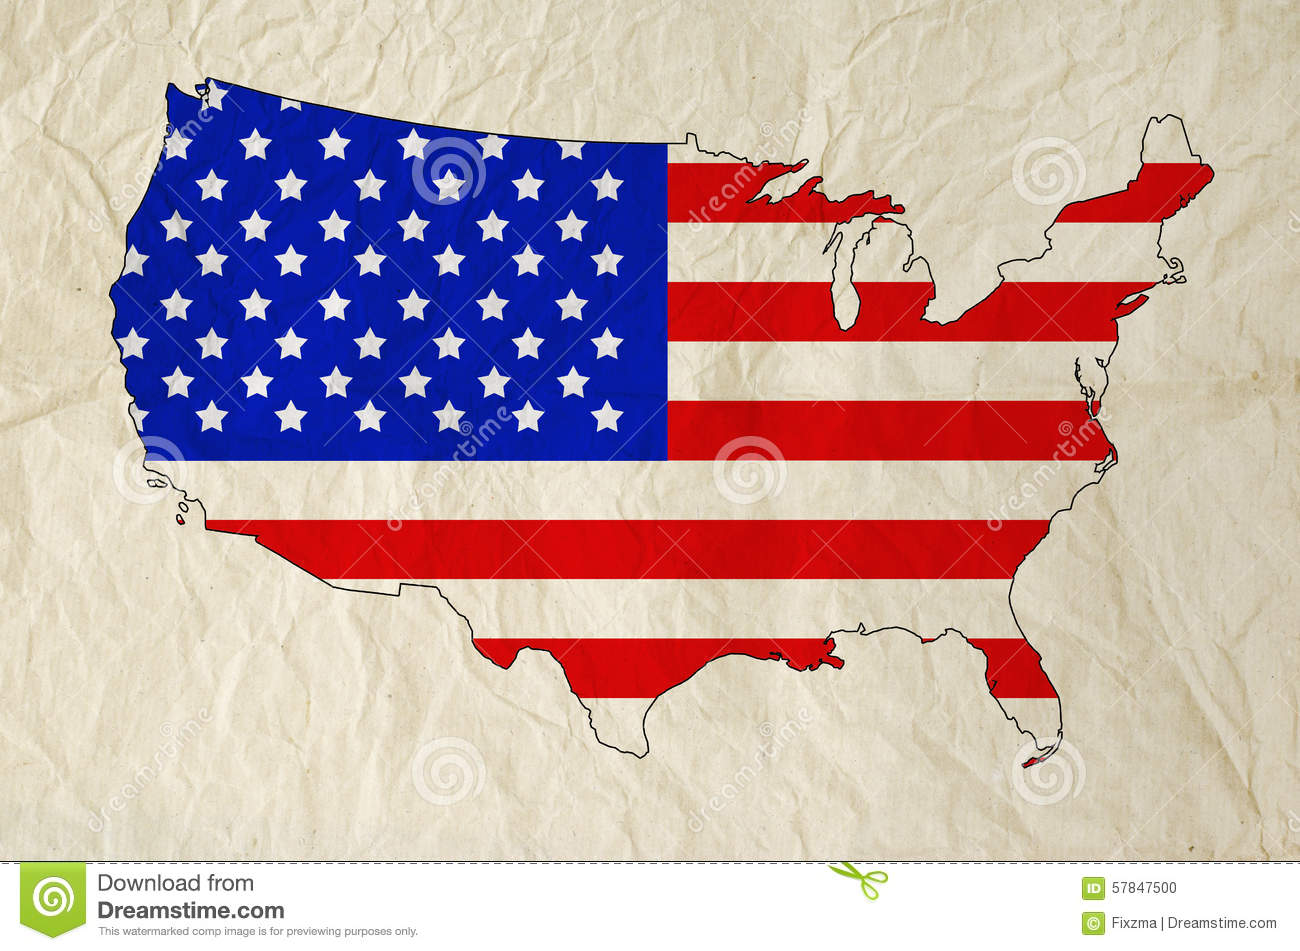 Flag Of United States Of America In USA Map With Old Paper Stock - How old is the united states of america